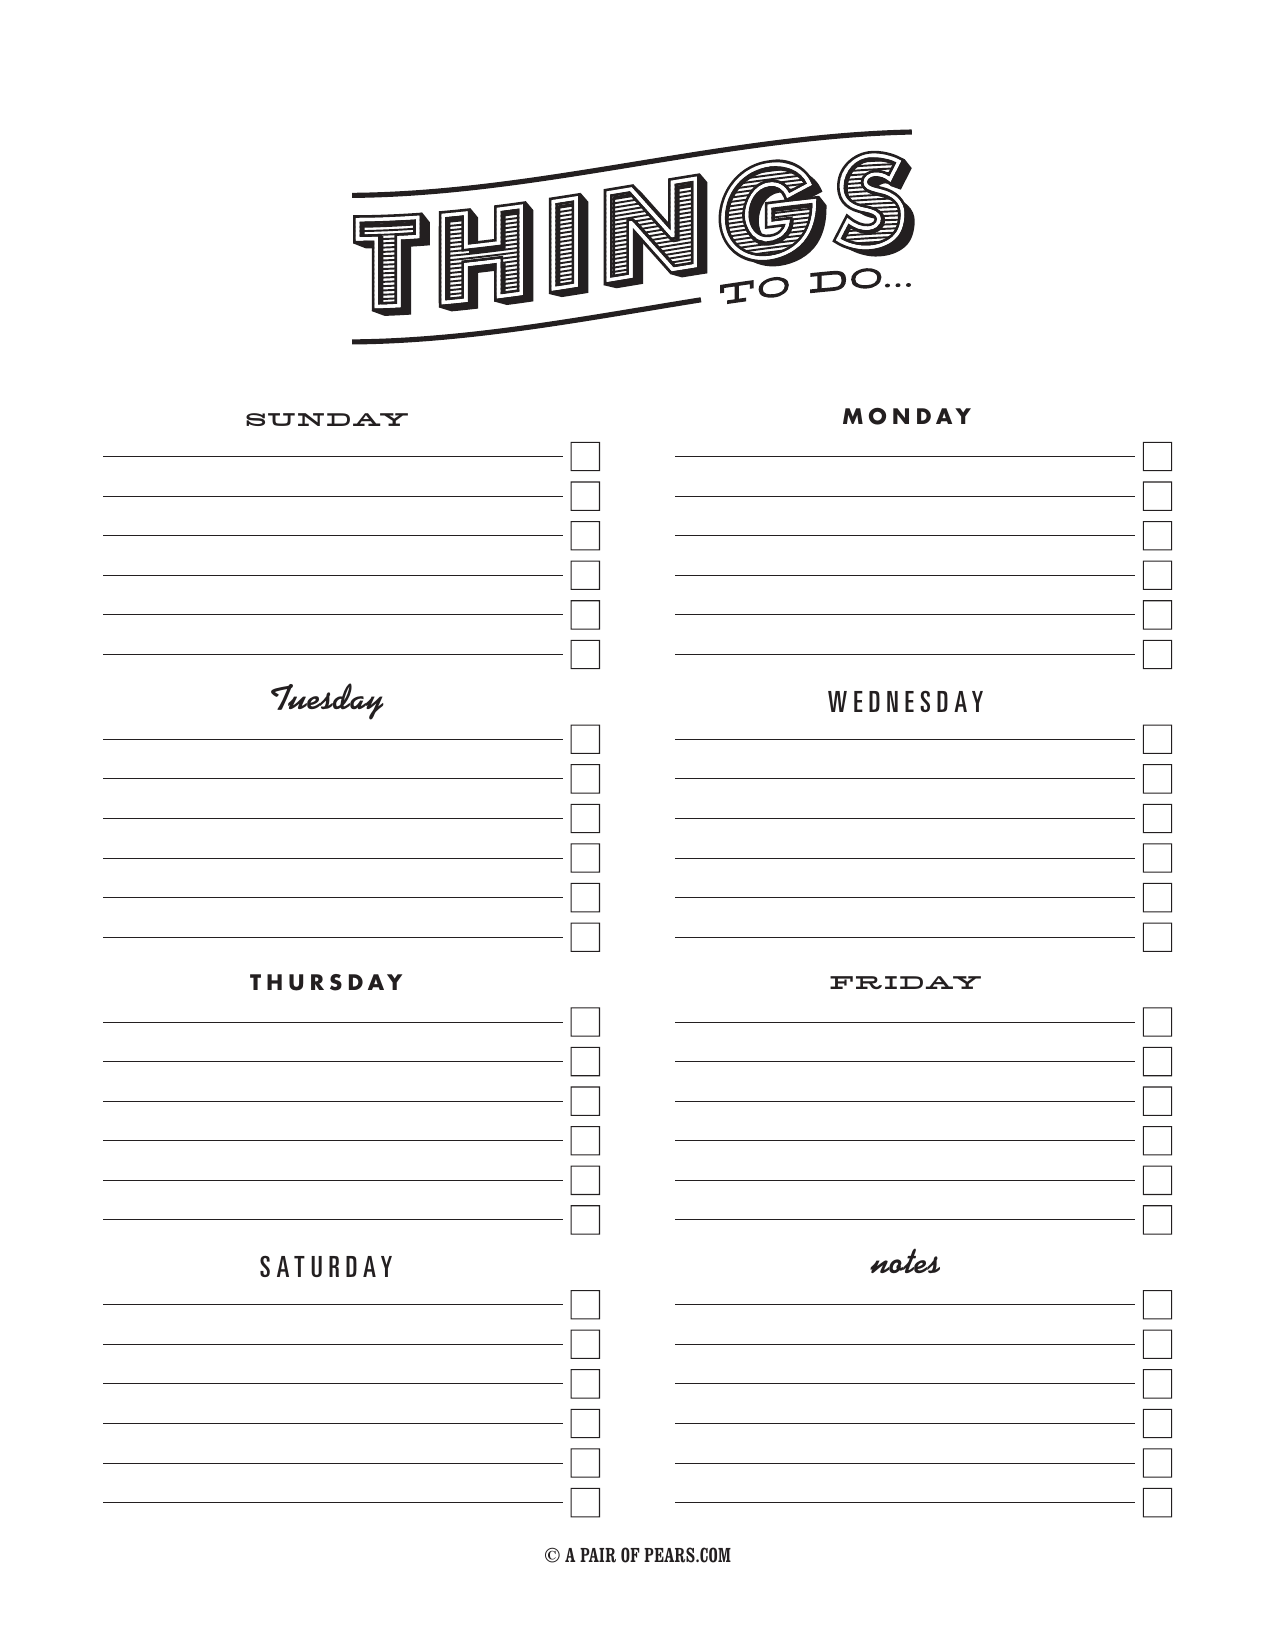 Download Weekly Checklist Template